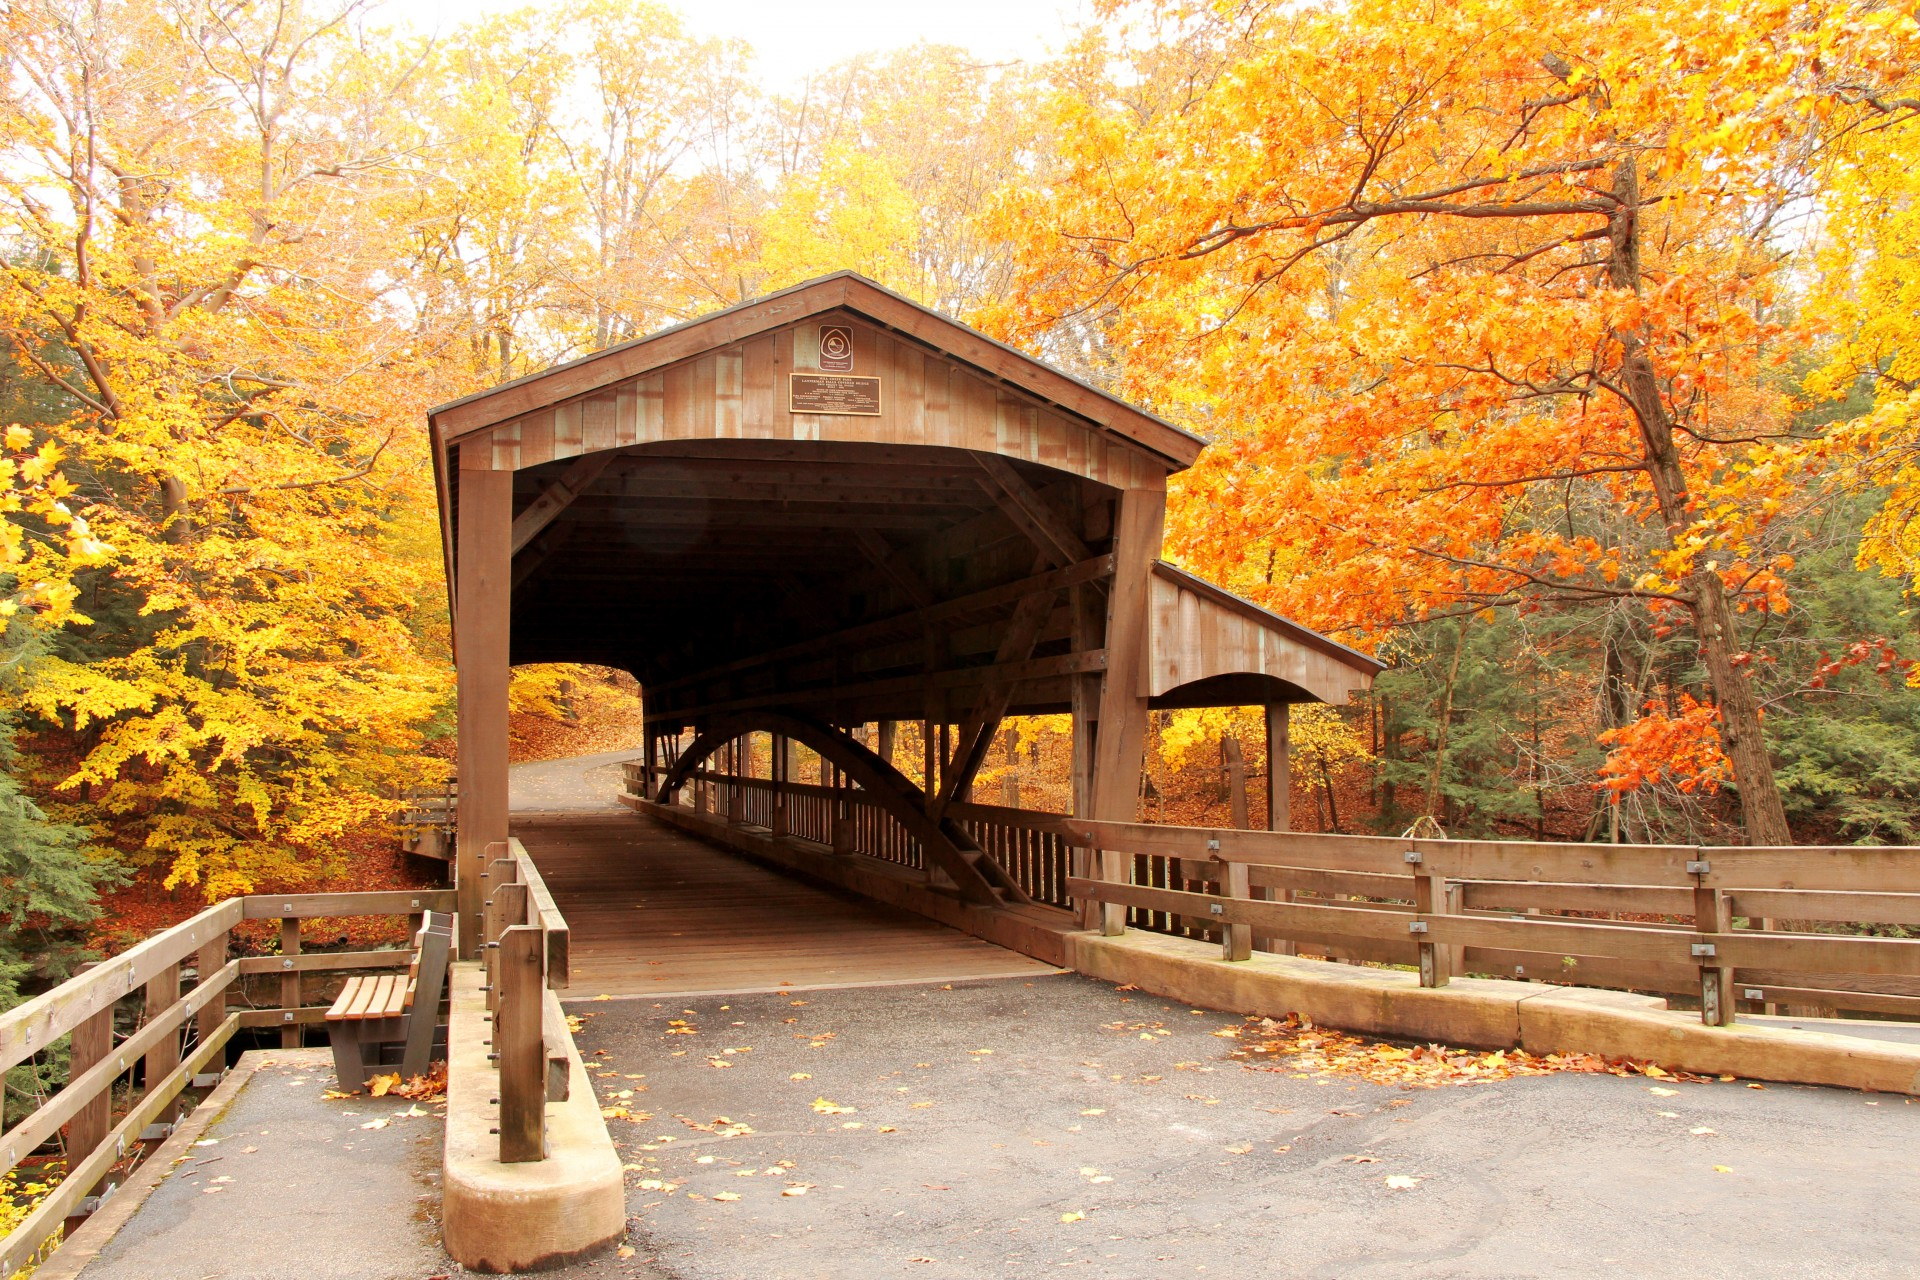 Fall Colors Wallpaper New England Covered Bridge In Forest 2 Free Stock Photo Public